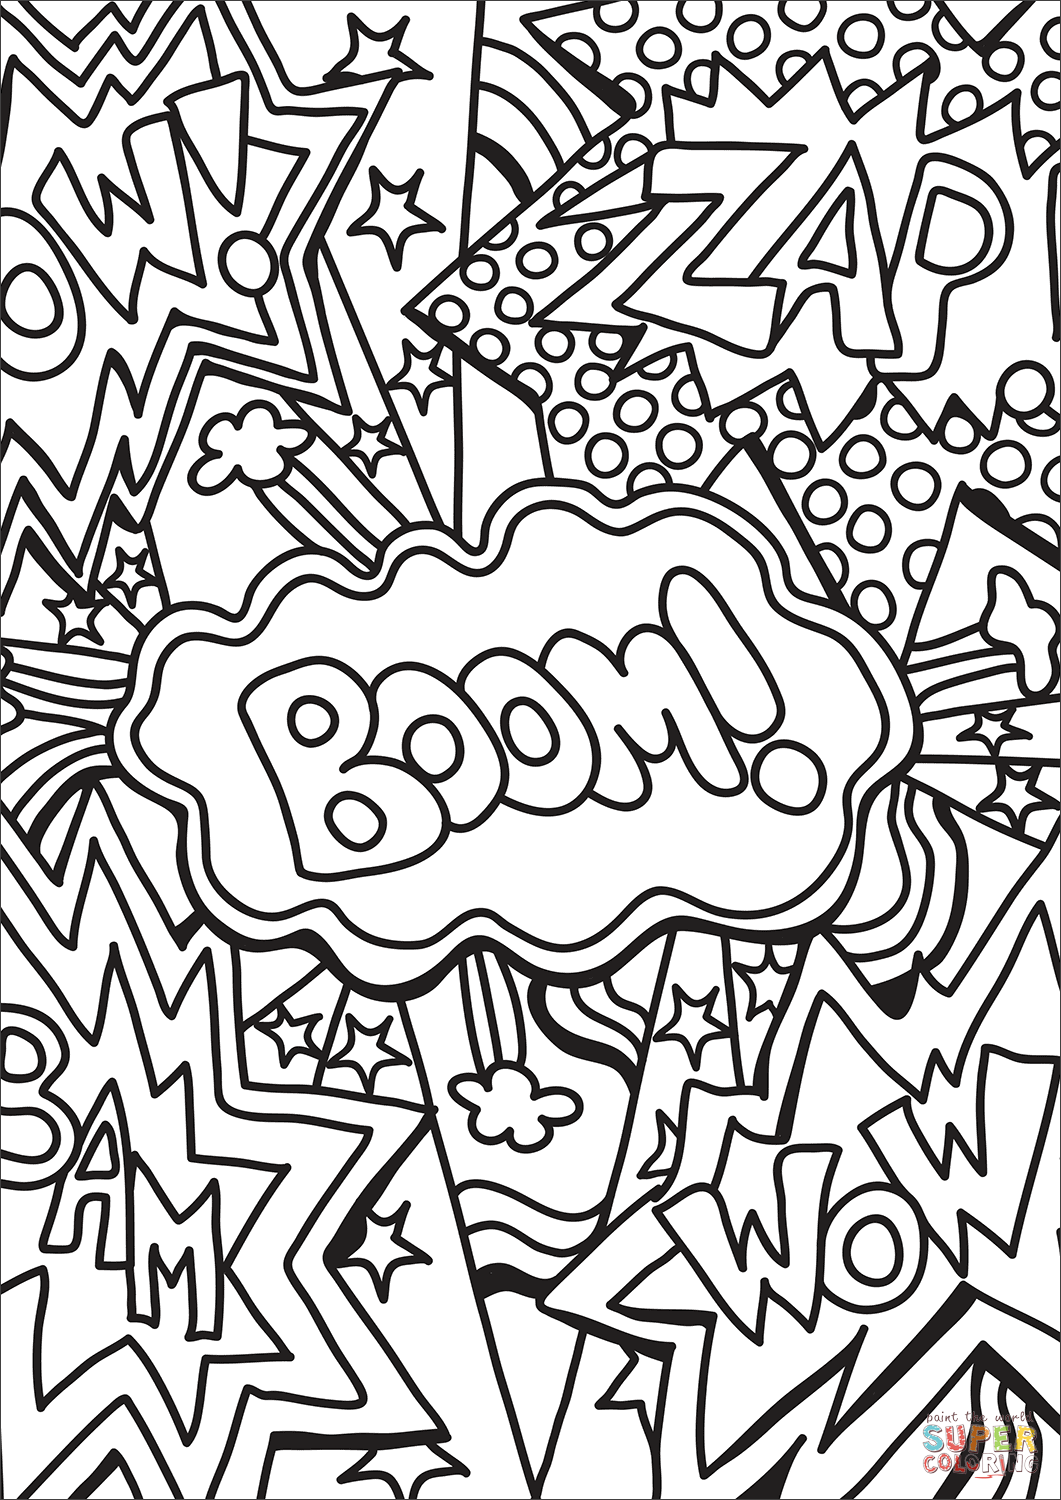 Zap Boom Wow coloring page  Free Printable Coloring Pages  Pop